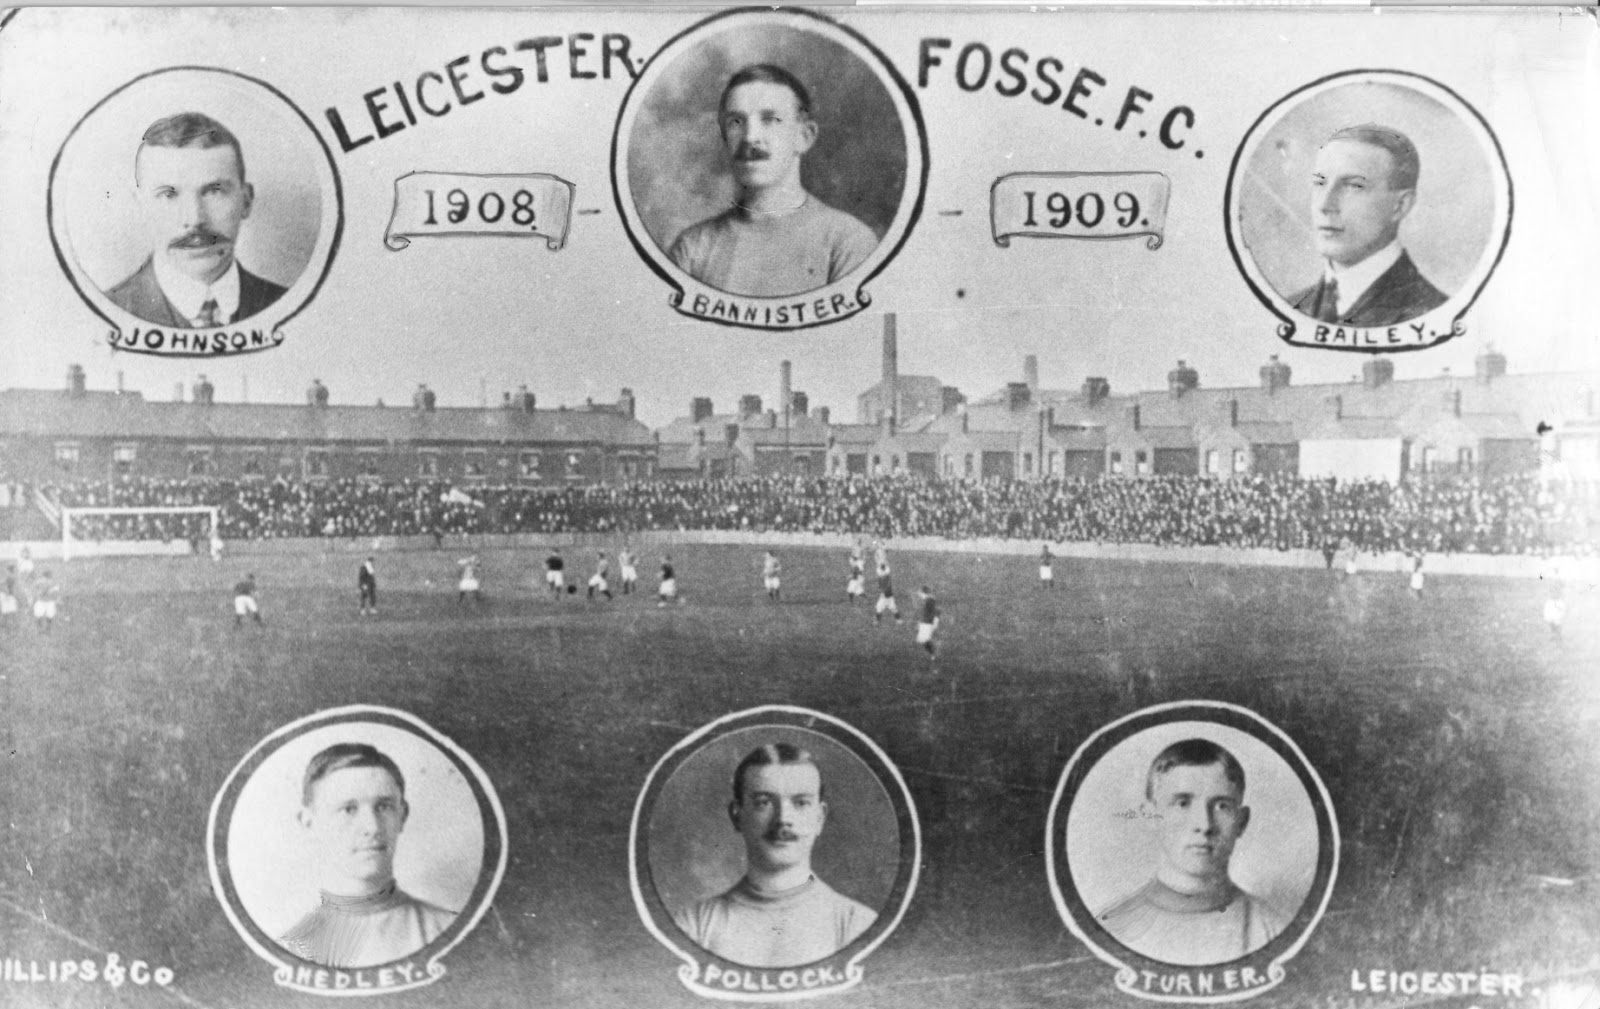 leicester-fosse